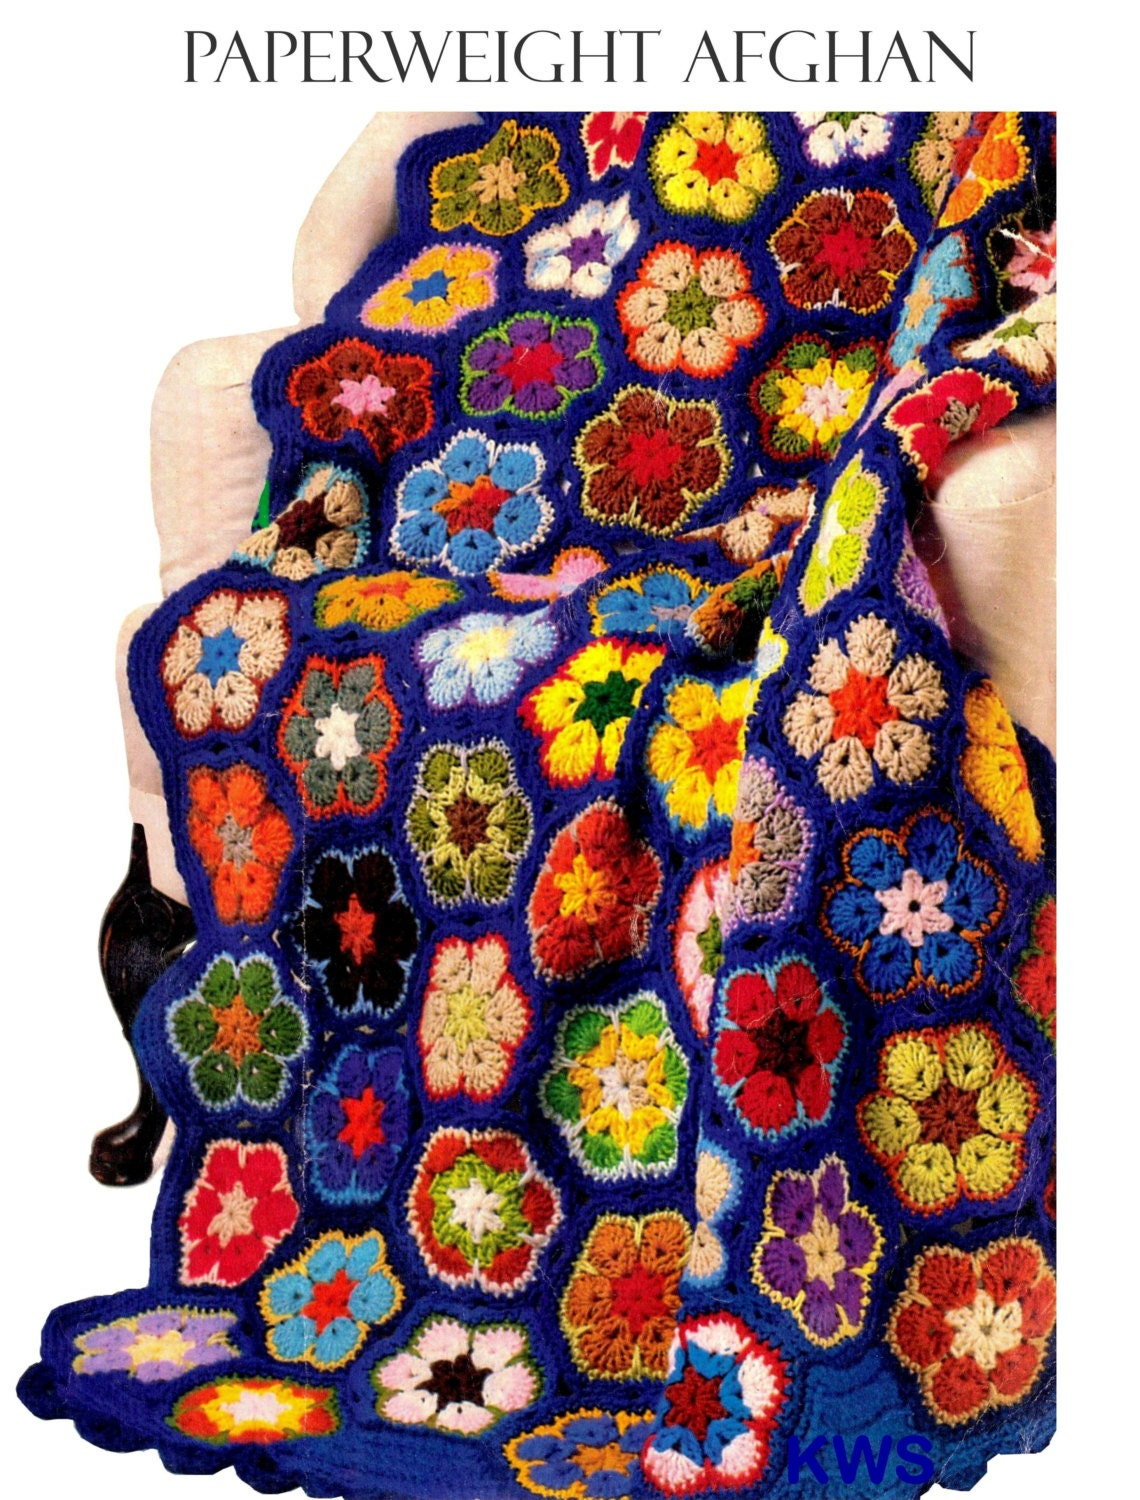 pussy-gallery-vintage-crochet-afghan-patterns-real-world-nude